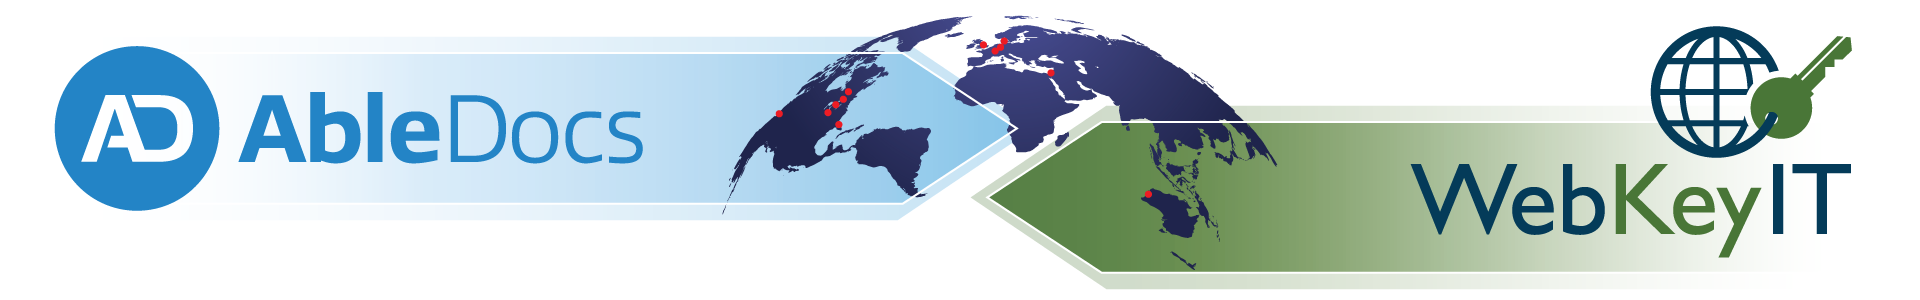 A map of the world with the AbleDocs logo in an blue arrow over North America and a green arrow with Web Key IT logo over Australasia